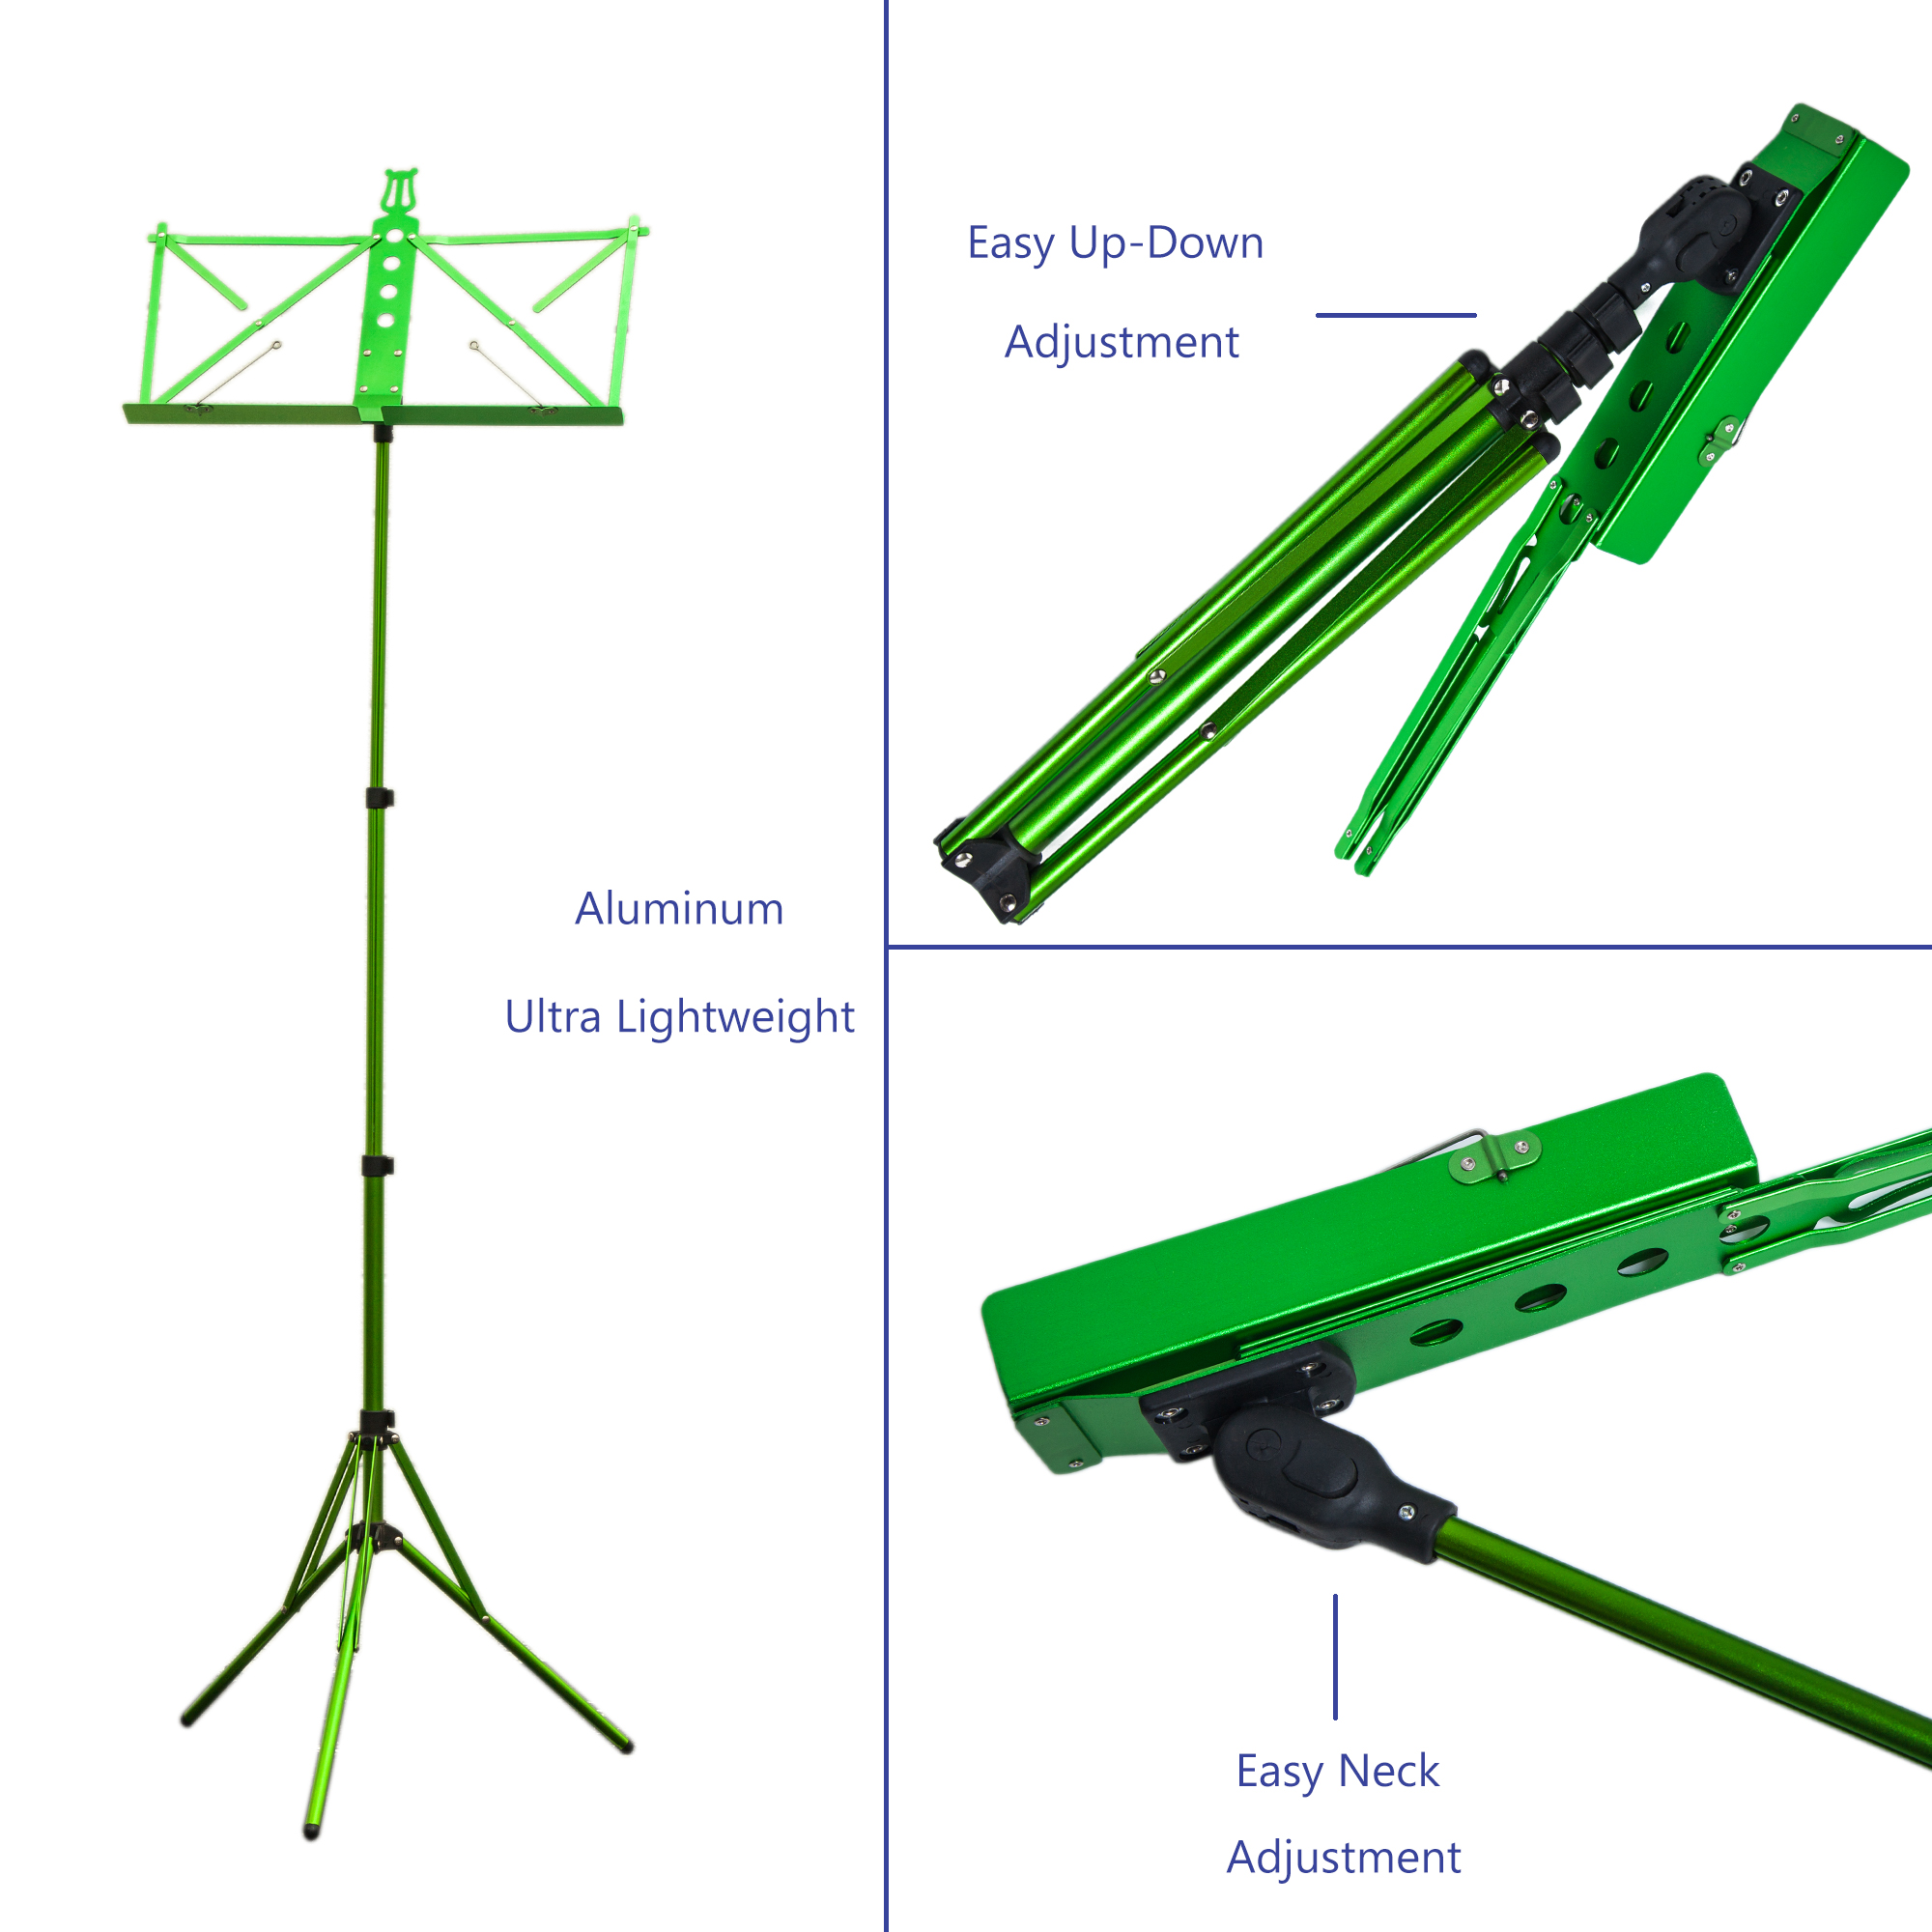 Paititi Brand New Strong Durable Adjustable Folding Music Stand with Carrying Bag-Green